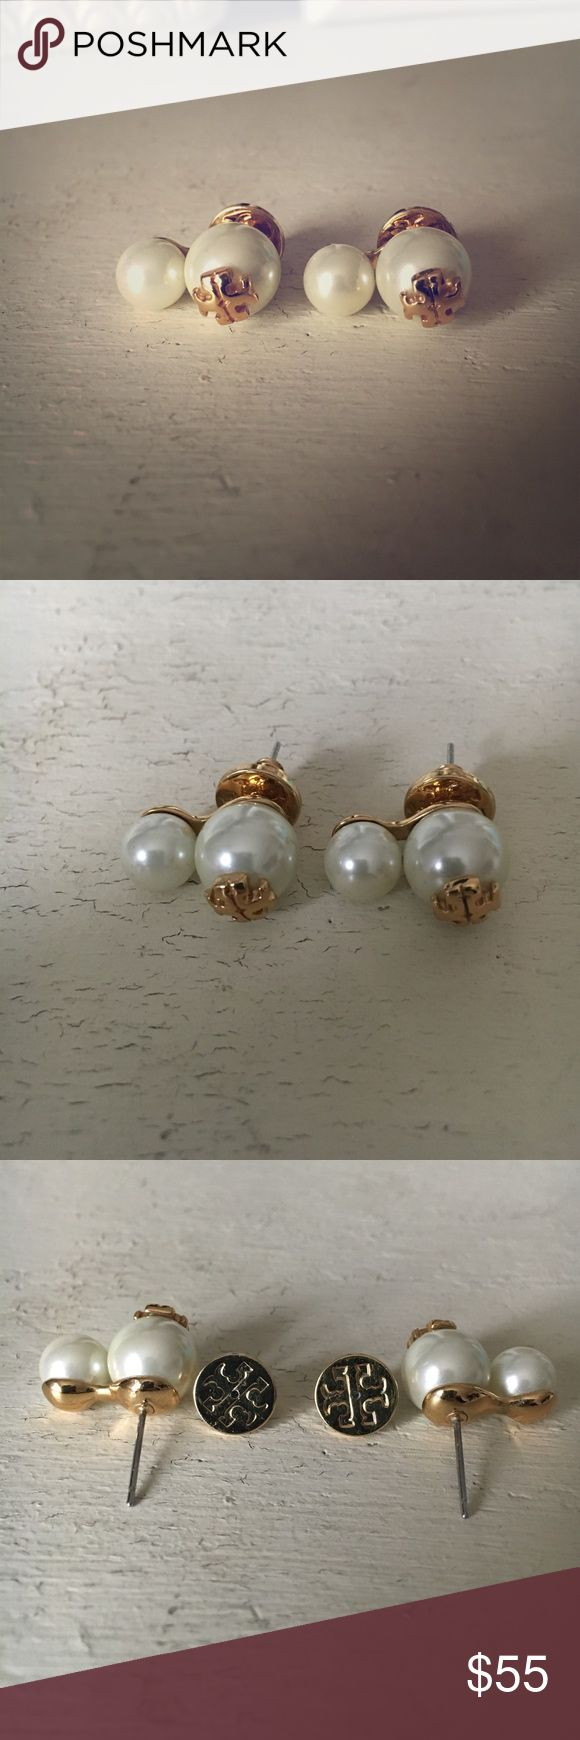 Tory Burch Stud Double Pearl Earrings Tory Burch Stud Double Pearl Earrings, in perfect condition. I have only worn these for a few select events! Super cute earrings, solid quality! ❤ Tory Burch Jewelry Earrings